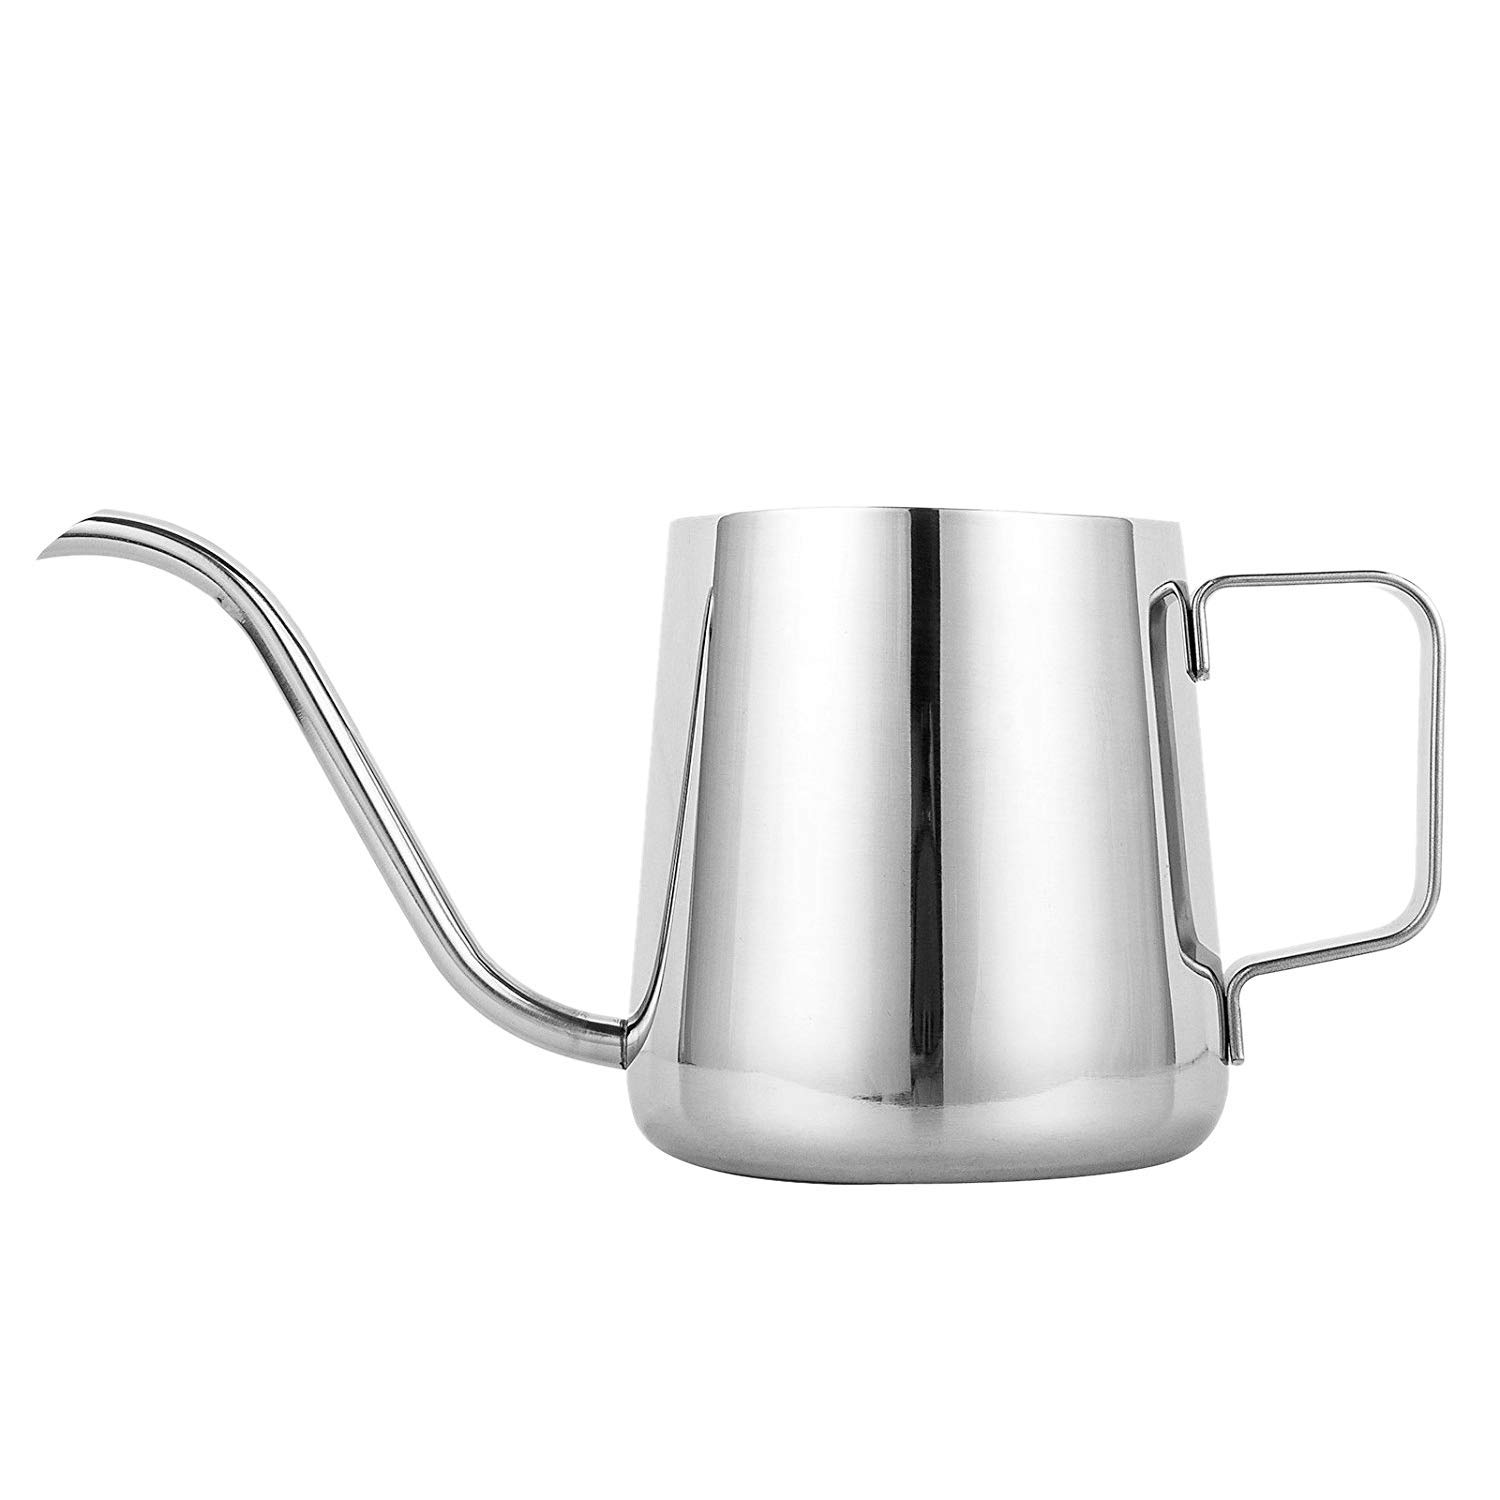 Latte and Frothing Milk Suitable for Coffee SM SunniMix Various Milk Frothing Pitcher Jug 8 Colors Available Stainless Steel Black 600ml